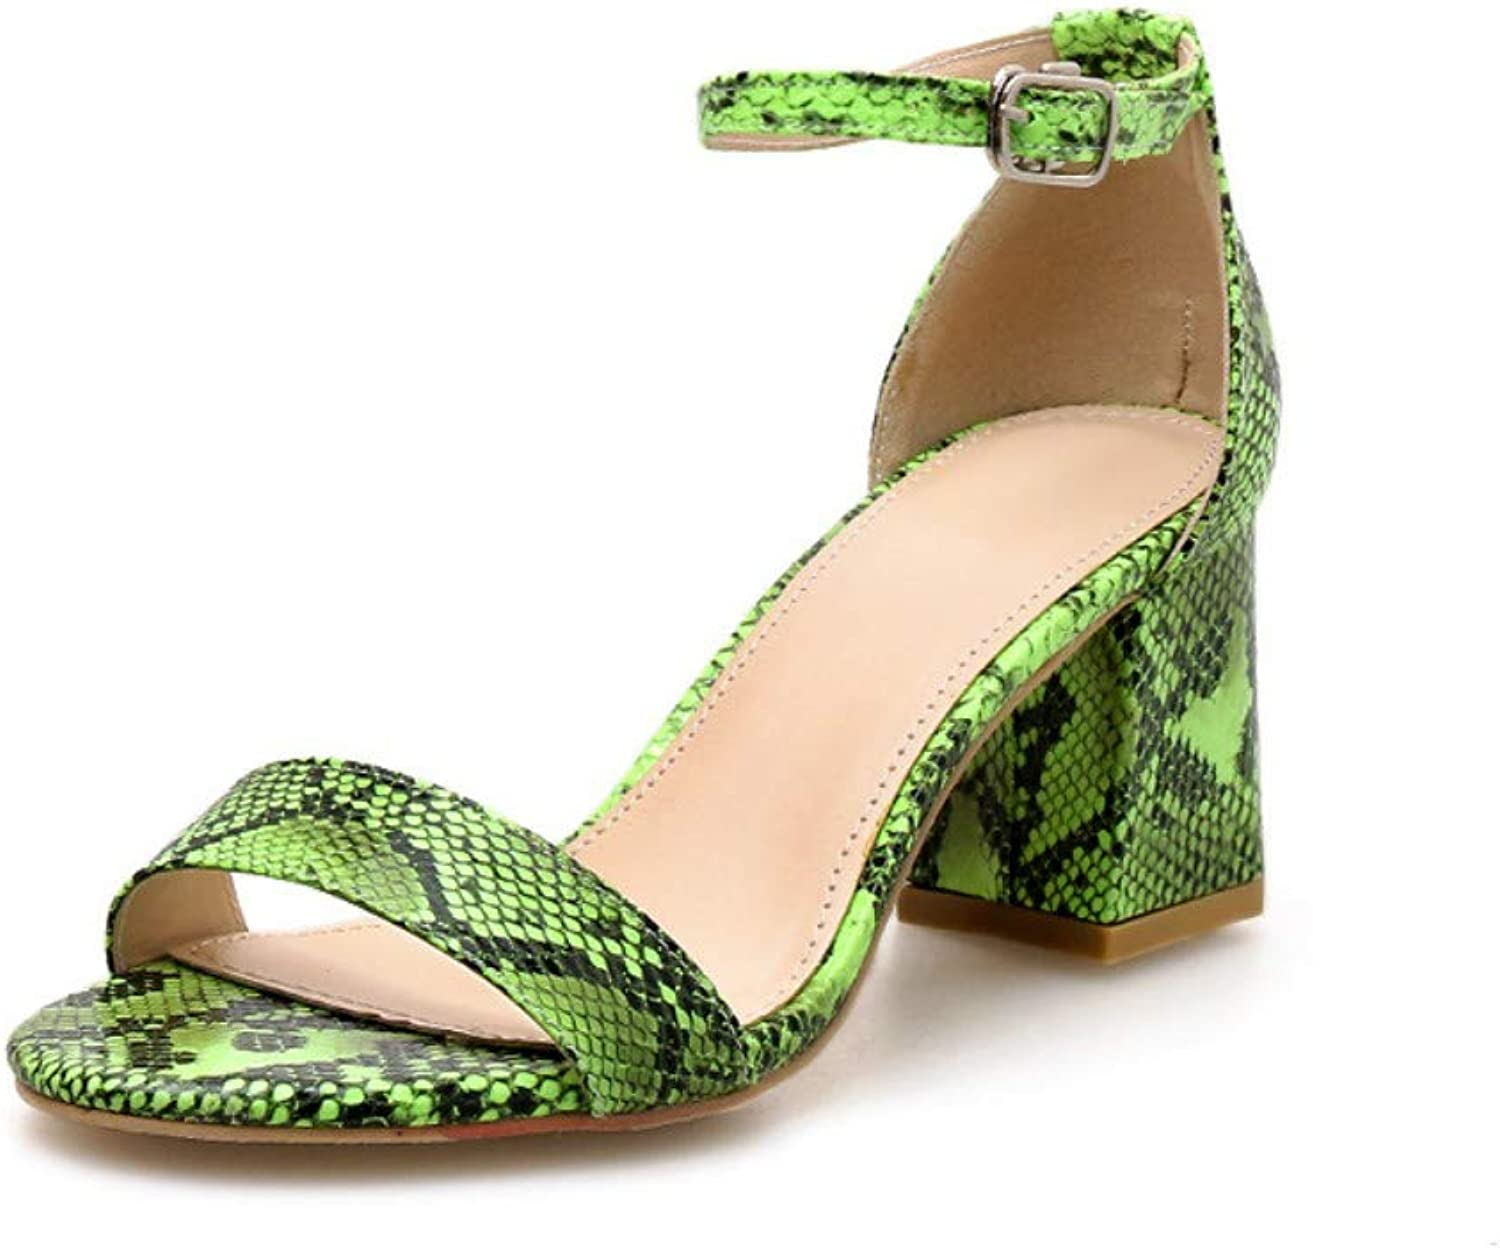 JQfashion Sexy Serpentine Sandals for Ladies High-Heeled shoes Rough-Heeled Roman shoes